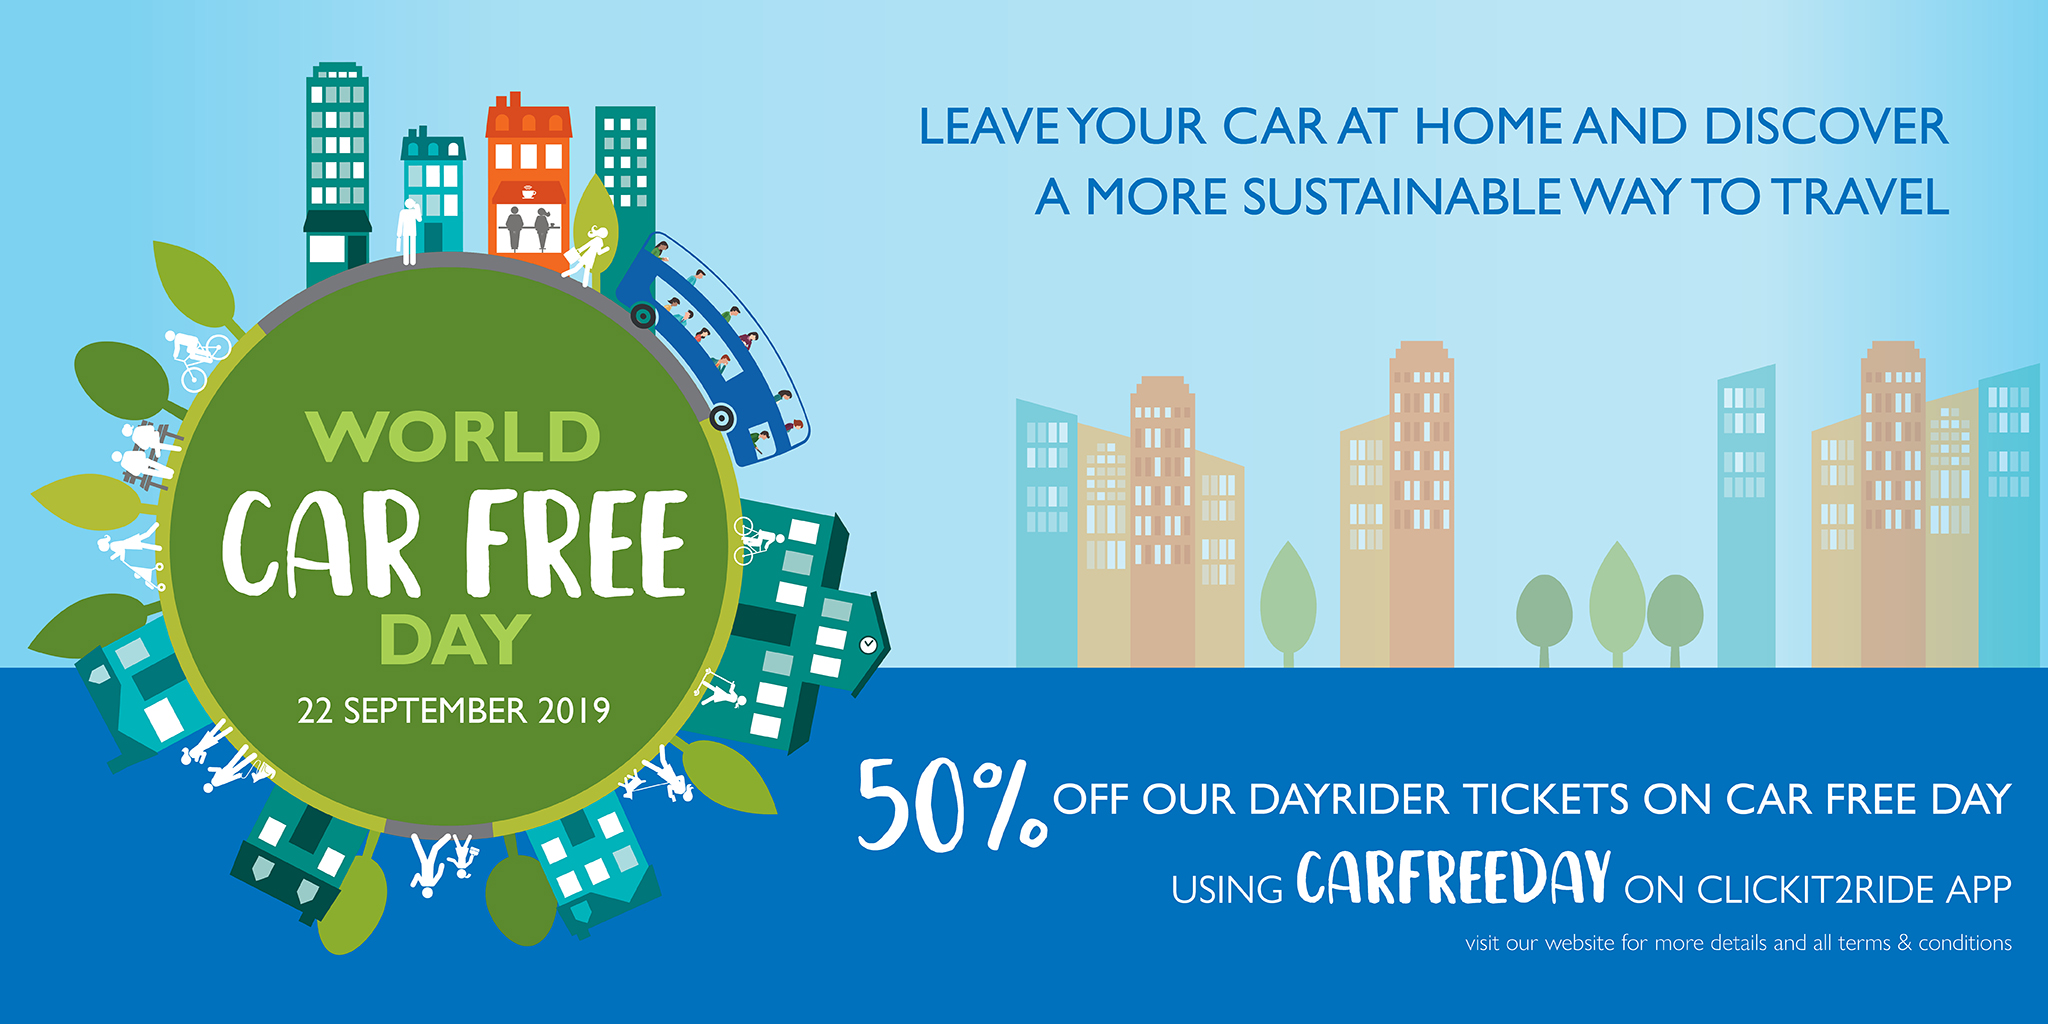 Image reading '50% off dayrider tickets on Car Free Day'